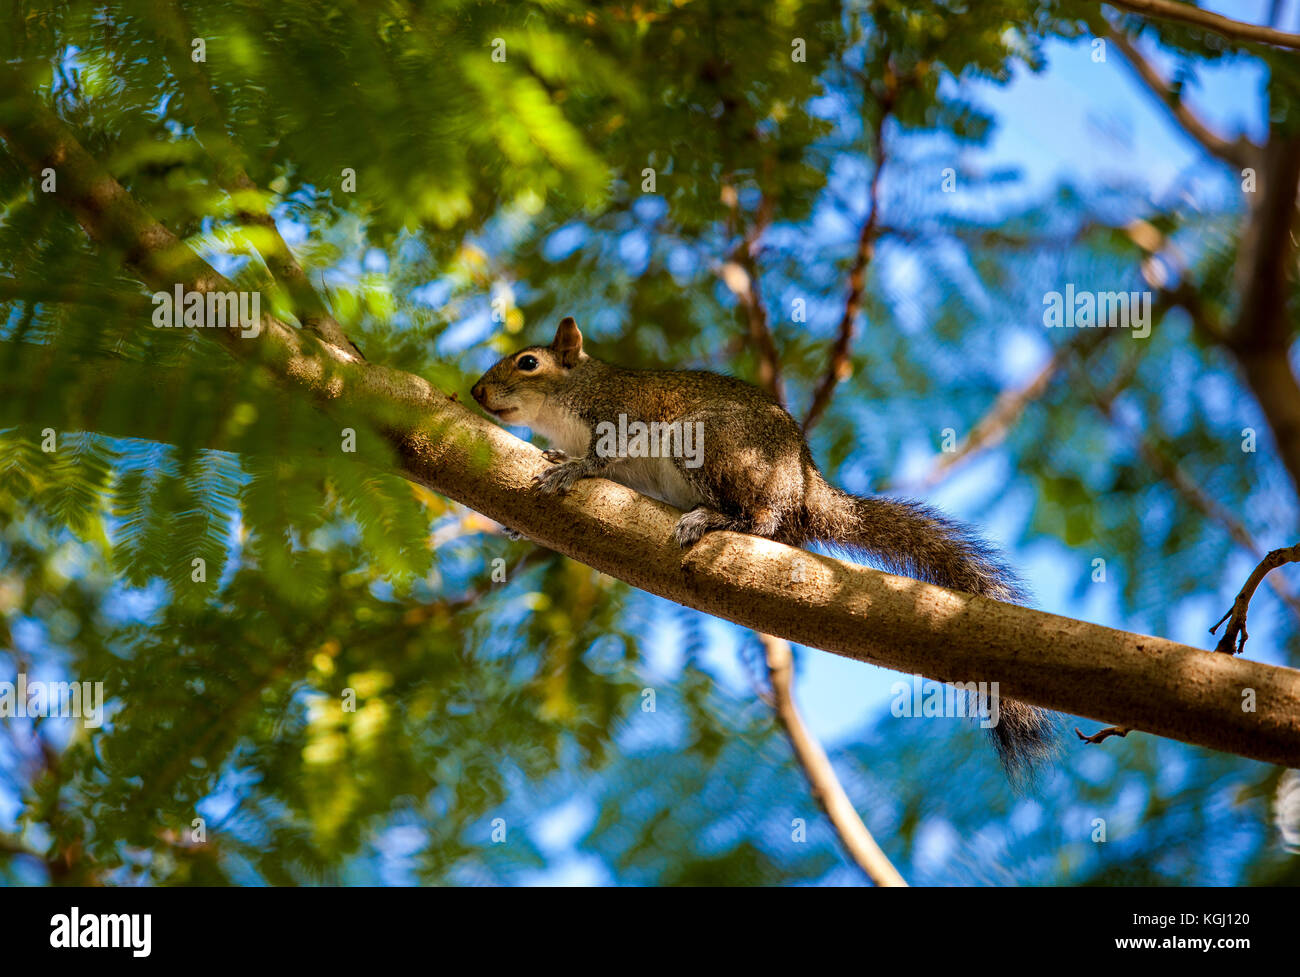 Eastern Grey Squirrel on a branch tree in South Florida, United States. - Stock Image